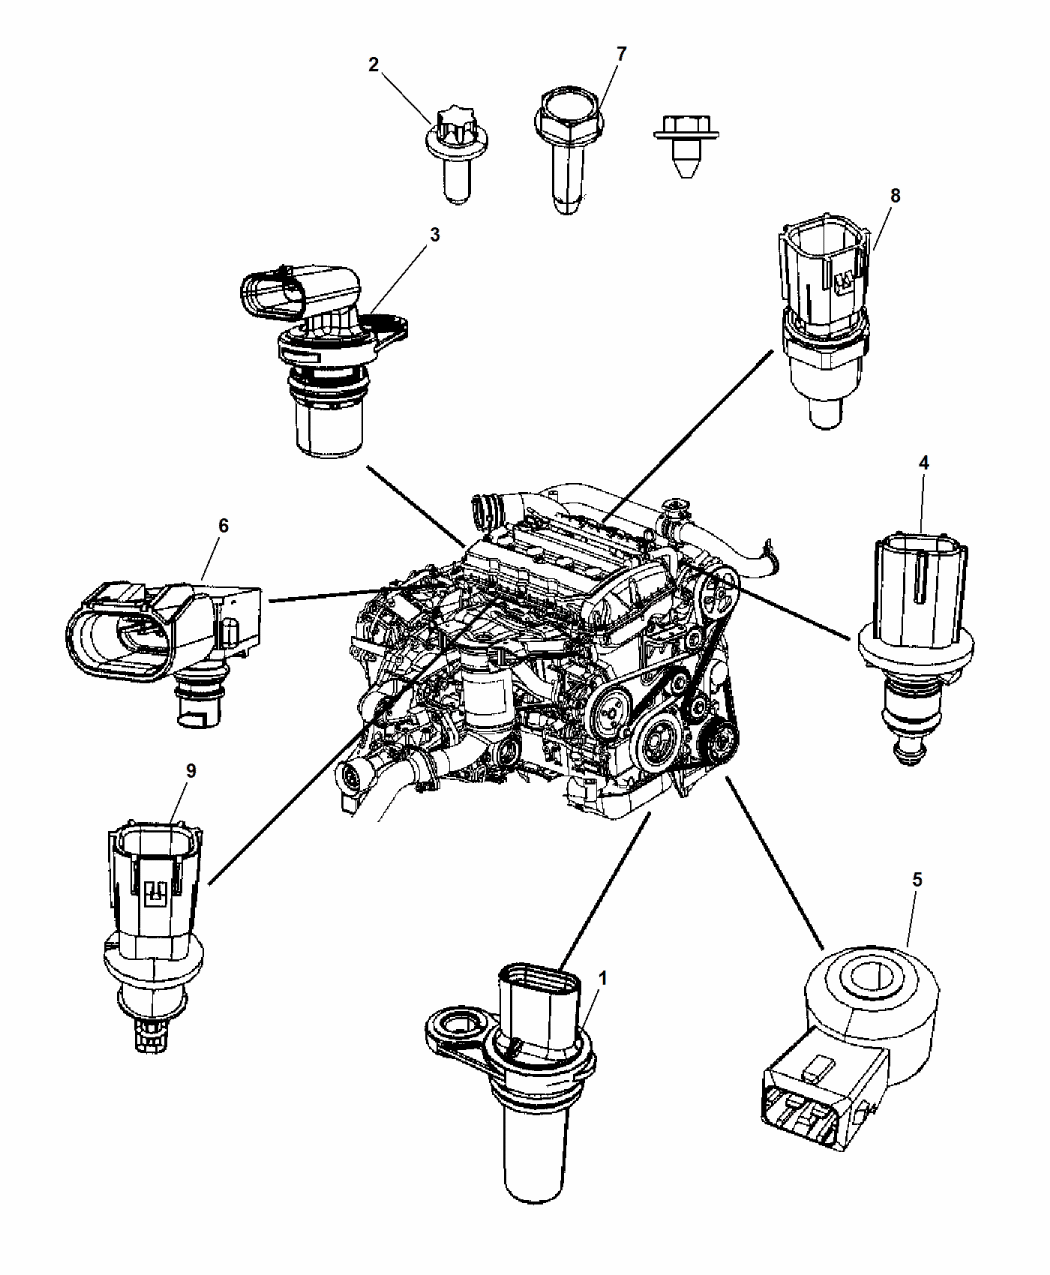 Jeep Patriot Headlight Wiring Diagram